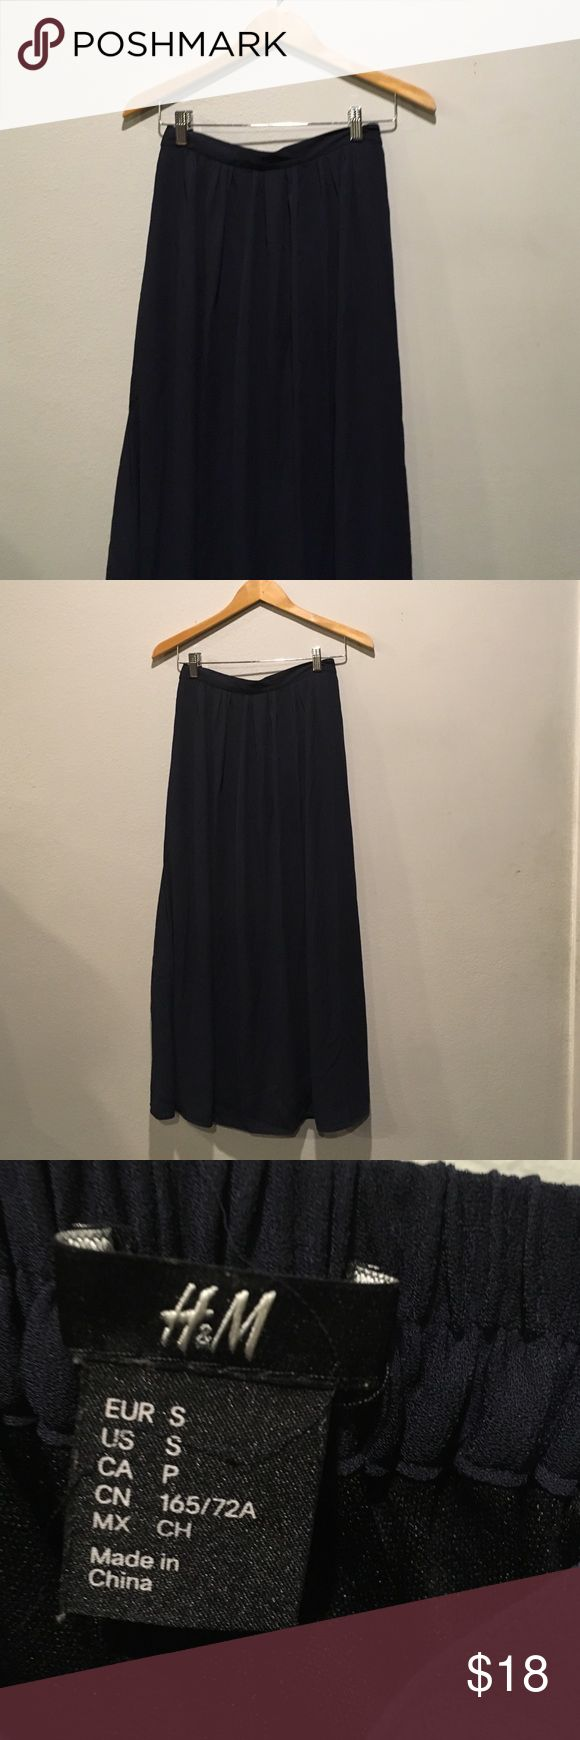 H&M fully lined maxi skirt Flowy navy blue maxi skirt from H&M. Fully lined. Stretchy elastic behind. H&M Skirts Maxi